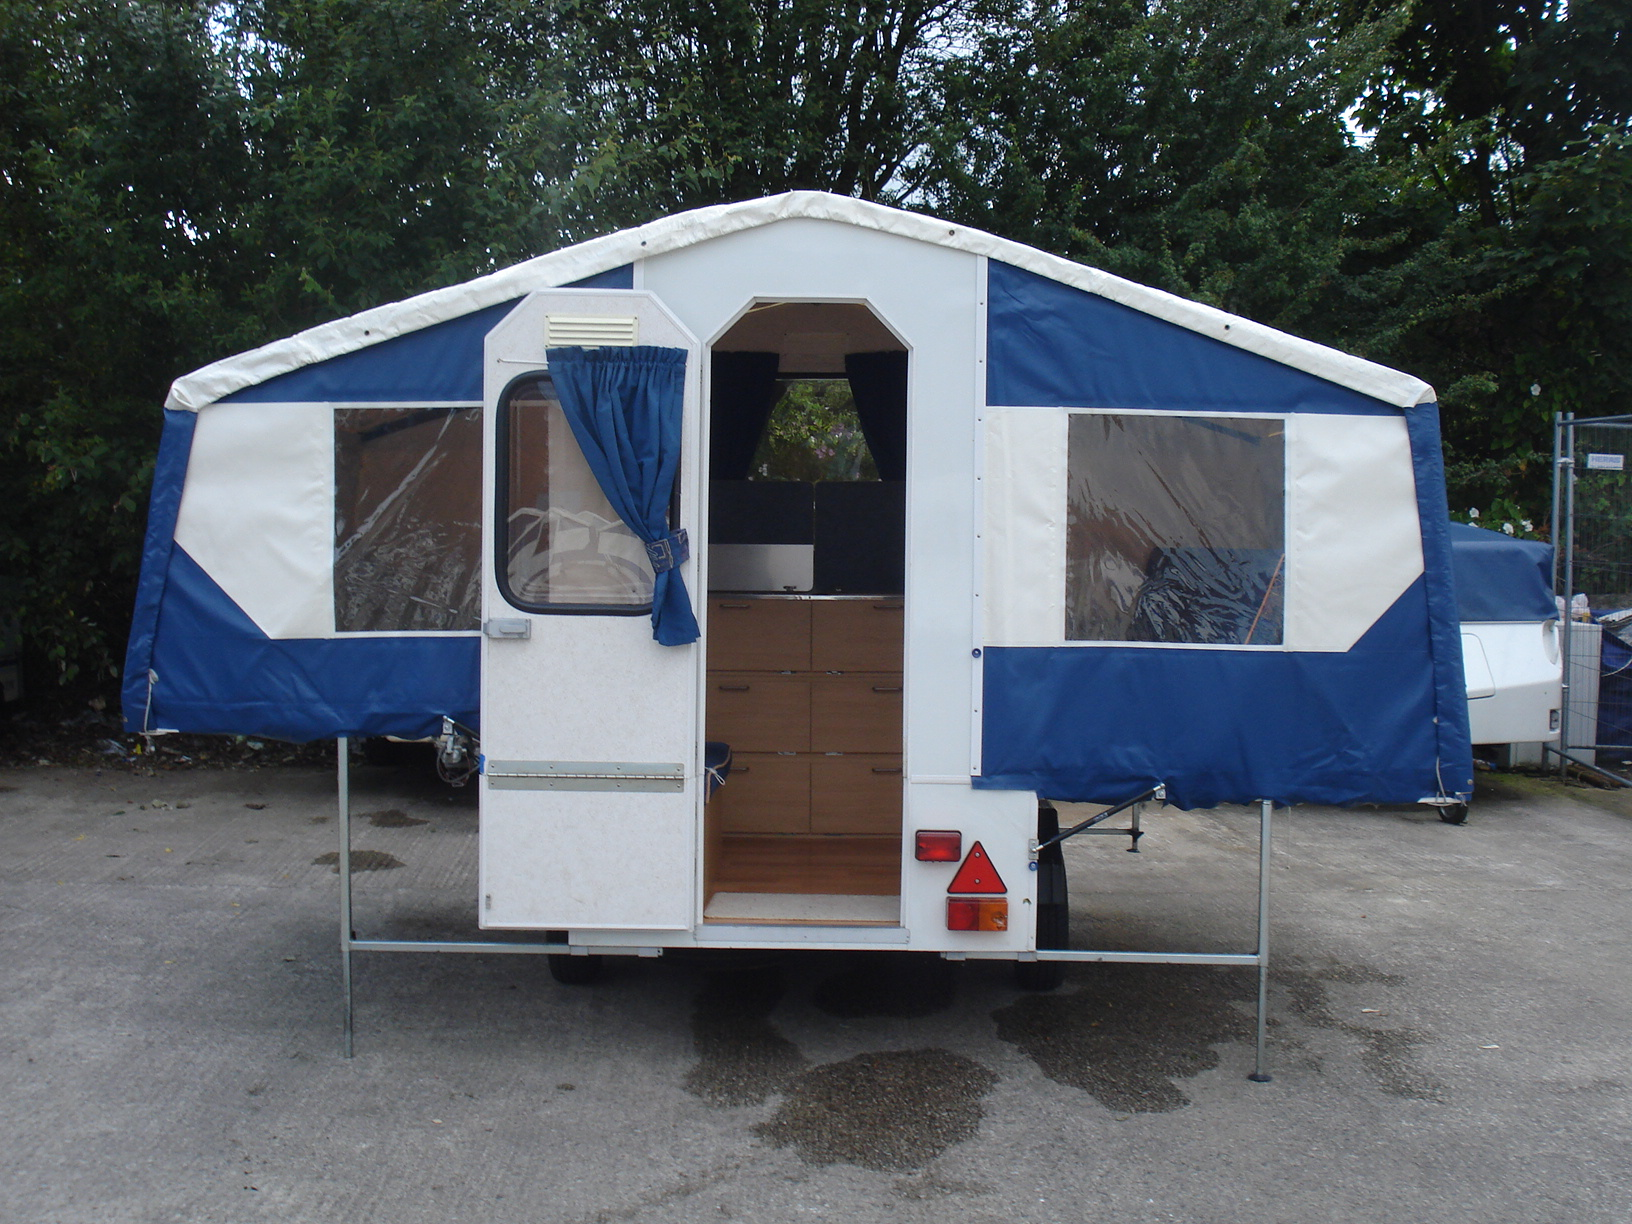 Dandy Tent Amp Full Image For Tent Trailer Awning 3 Screened